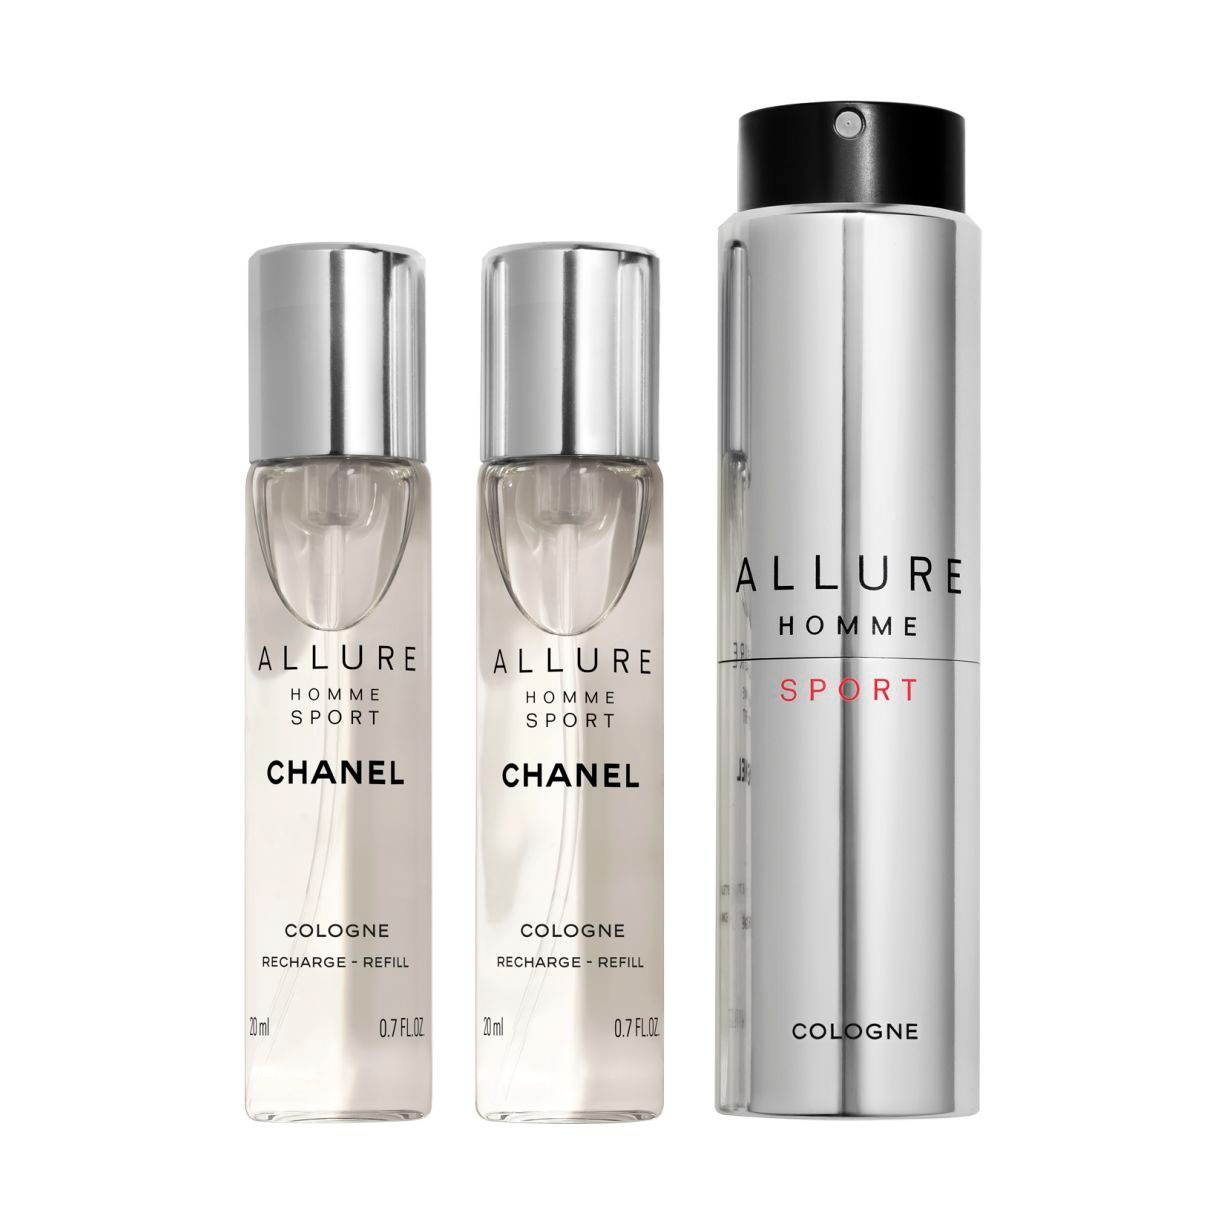 ALLURE HOMME SPORT COLOGNE NACHFÜLLBARES TRAVEL SPRAY